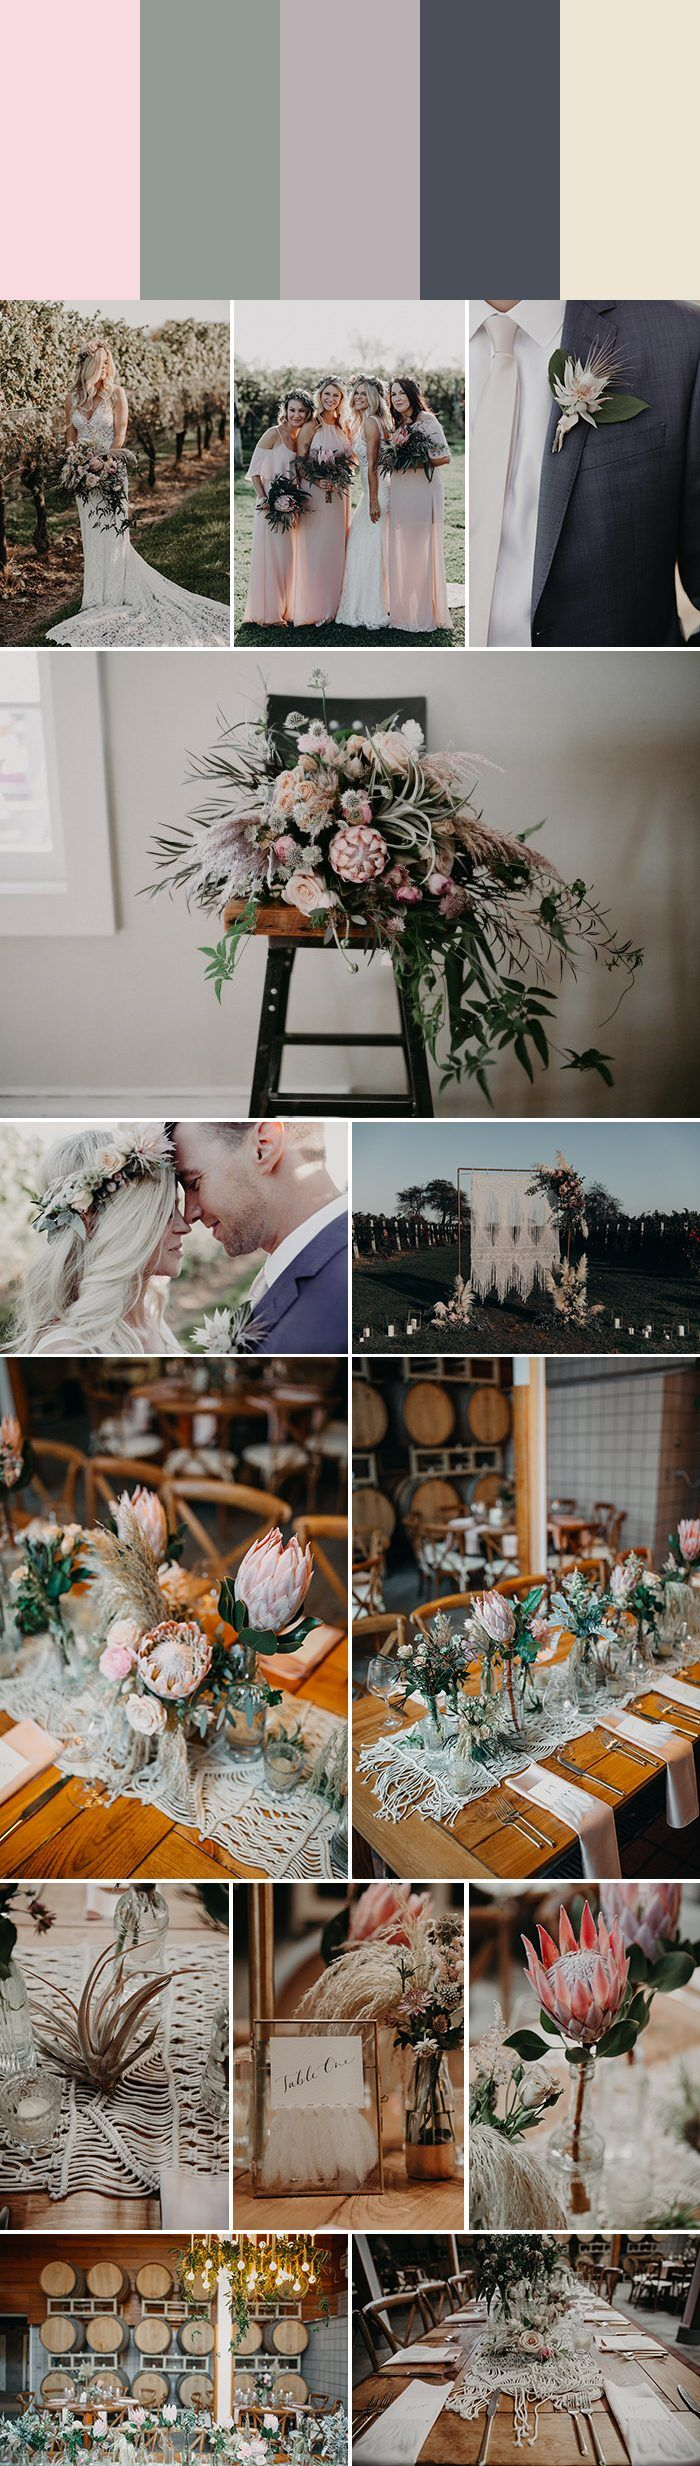 Spring wedding color palette idea: barely blush + sage green + fog + slate + cotton | Image by Corey Lynn Tucker Photography